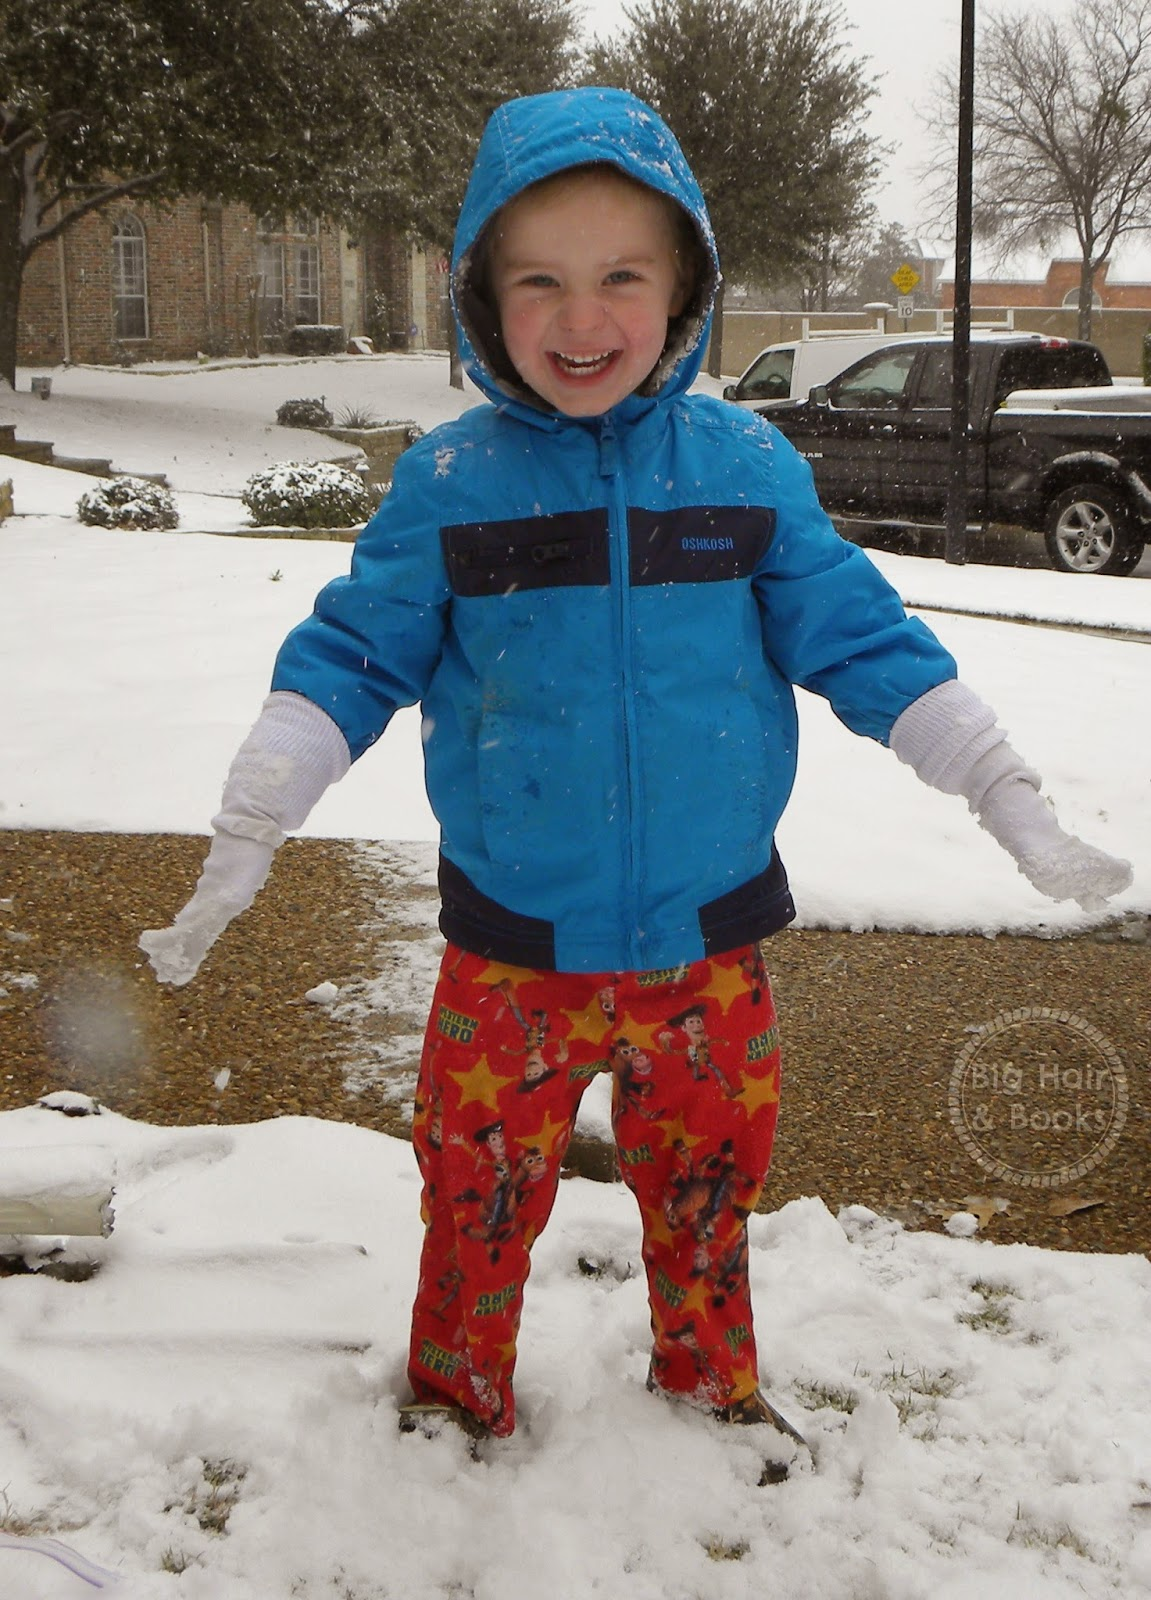 Snow Day in Texas!